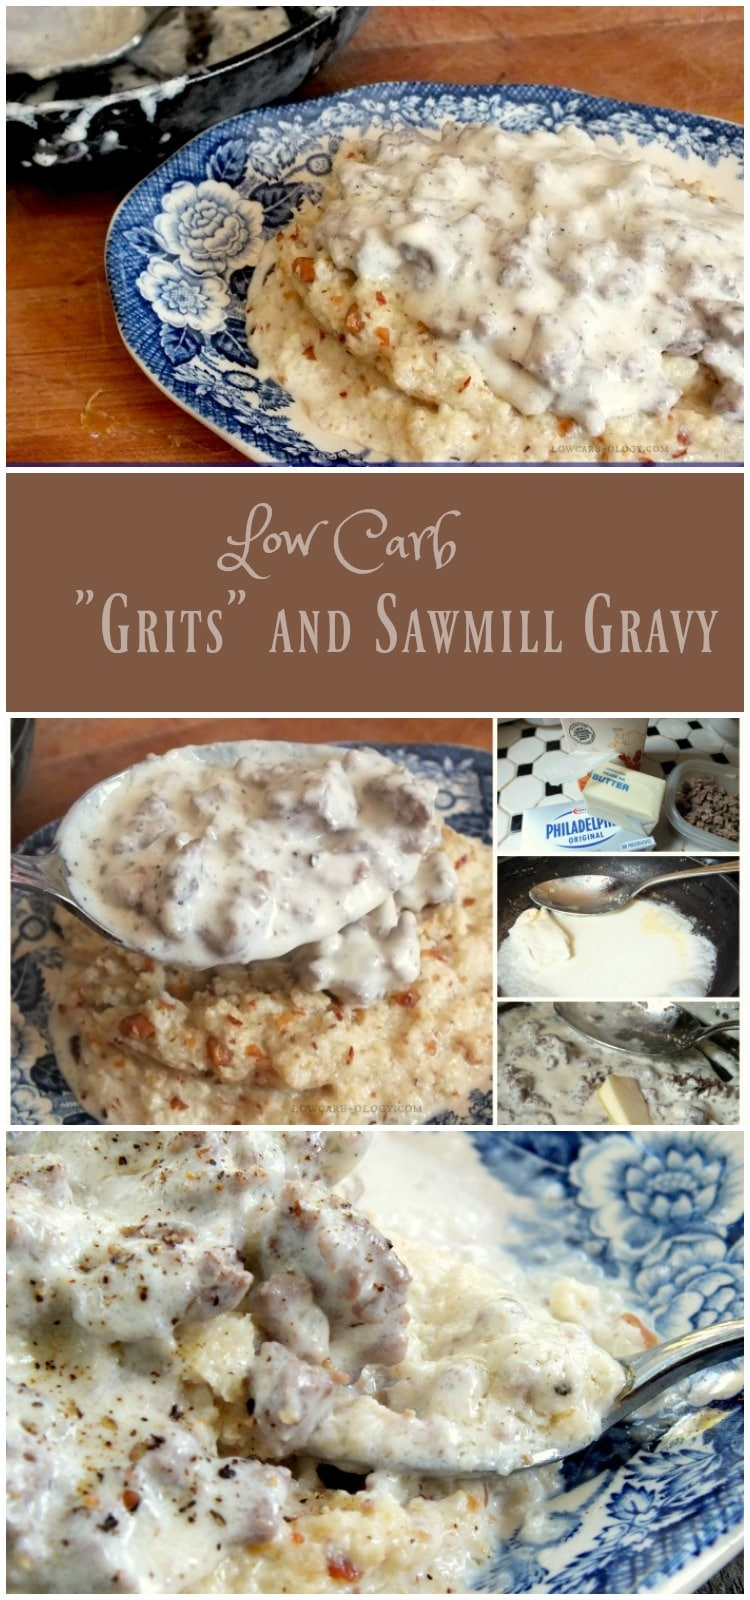 Low-carb breakfasts usually mean some form of eggs, right? Not with this dish of low carb grits and sawmill gravy. 3 little carbs and a whole lot of yum.